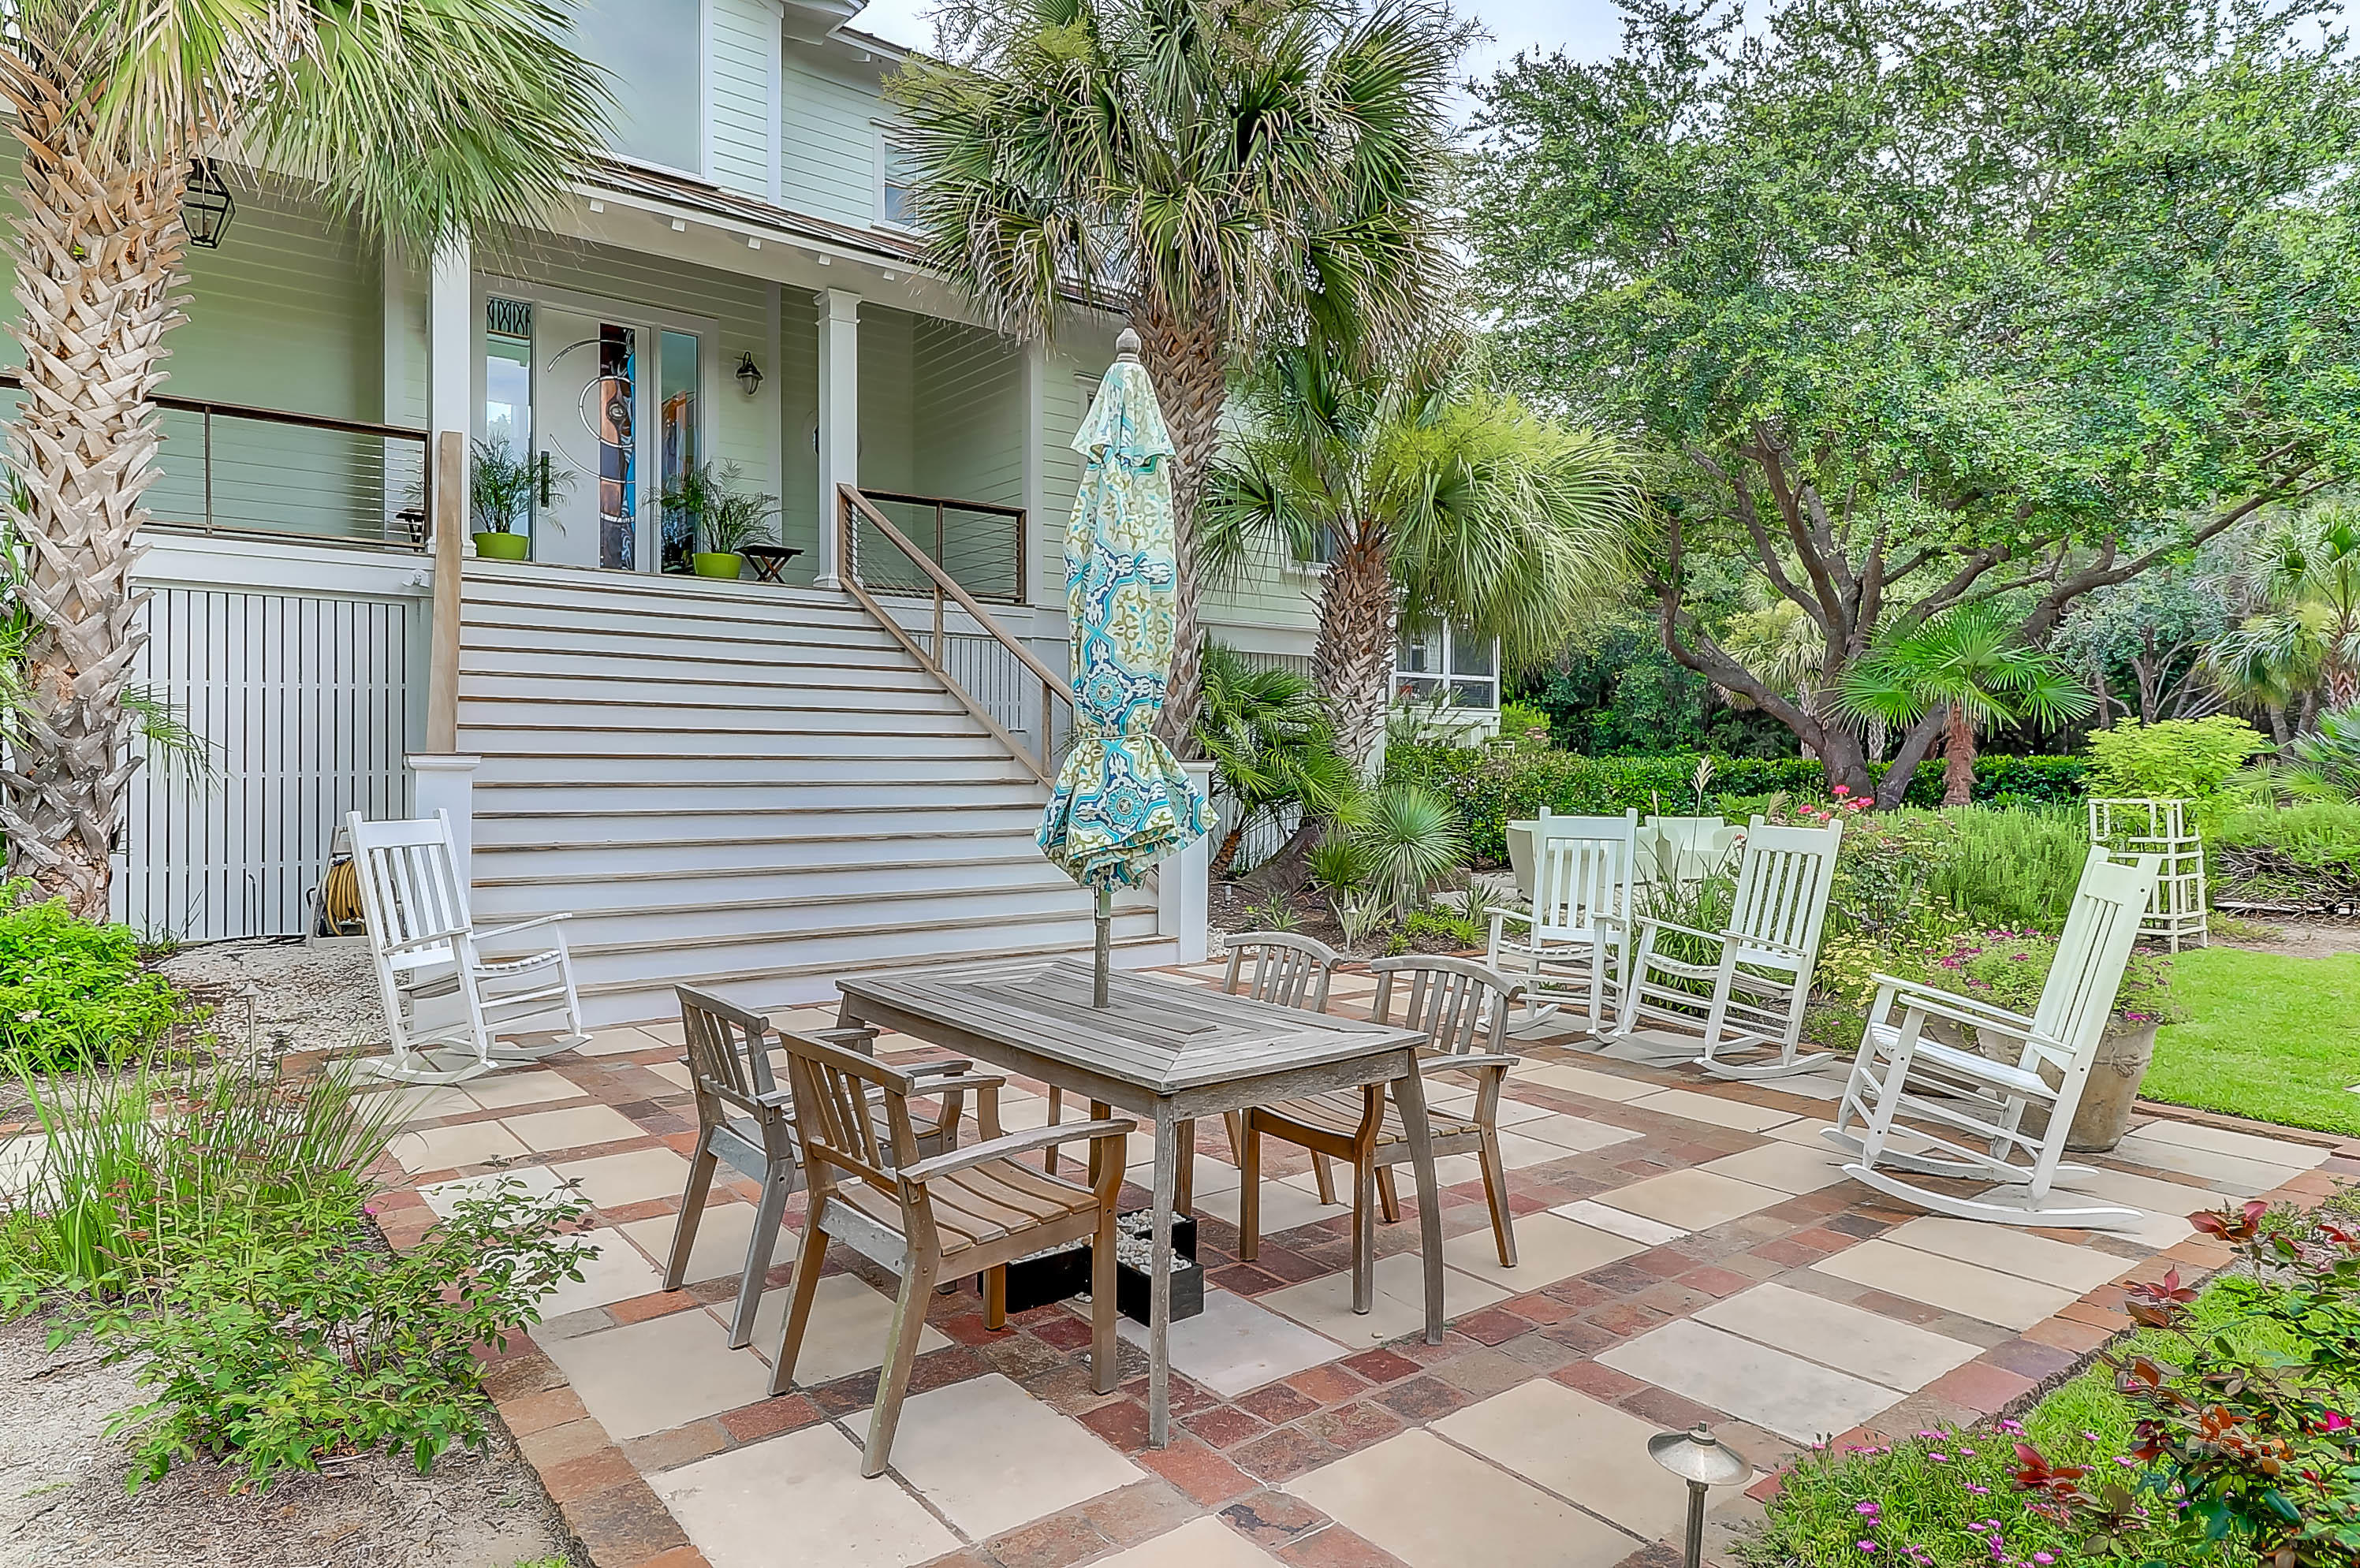 Photo of 1105 Fort Lamar Rd, Charleston, SC 29412